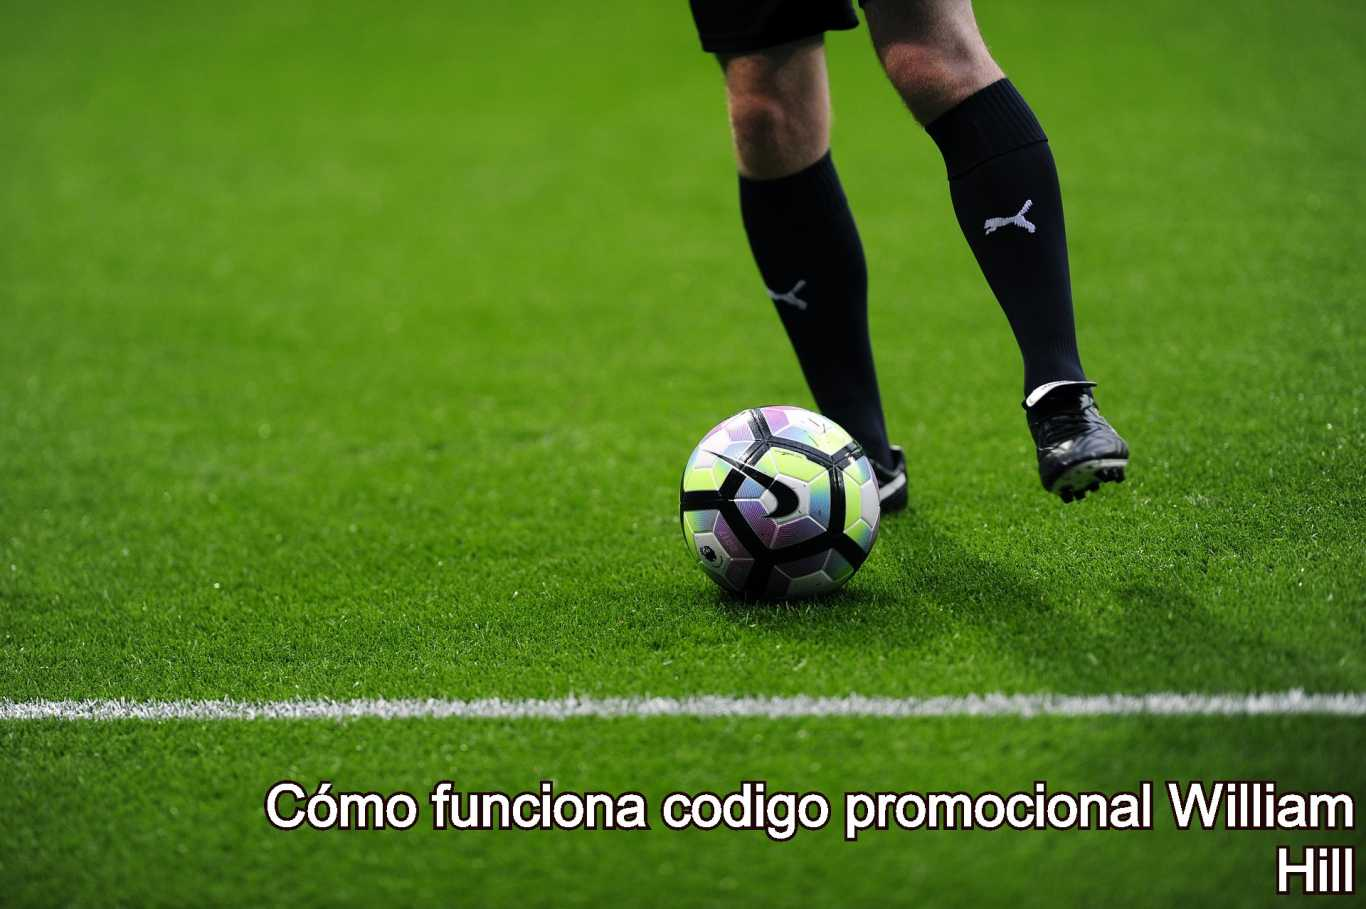 Cómo funciona codigo promocional William Hill